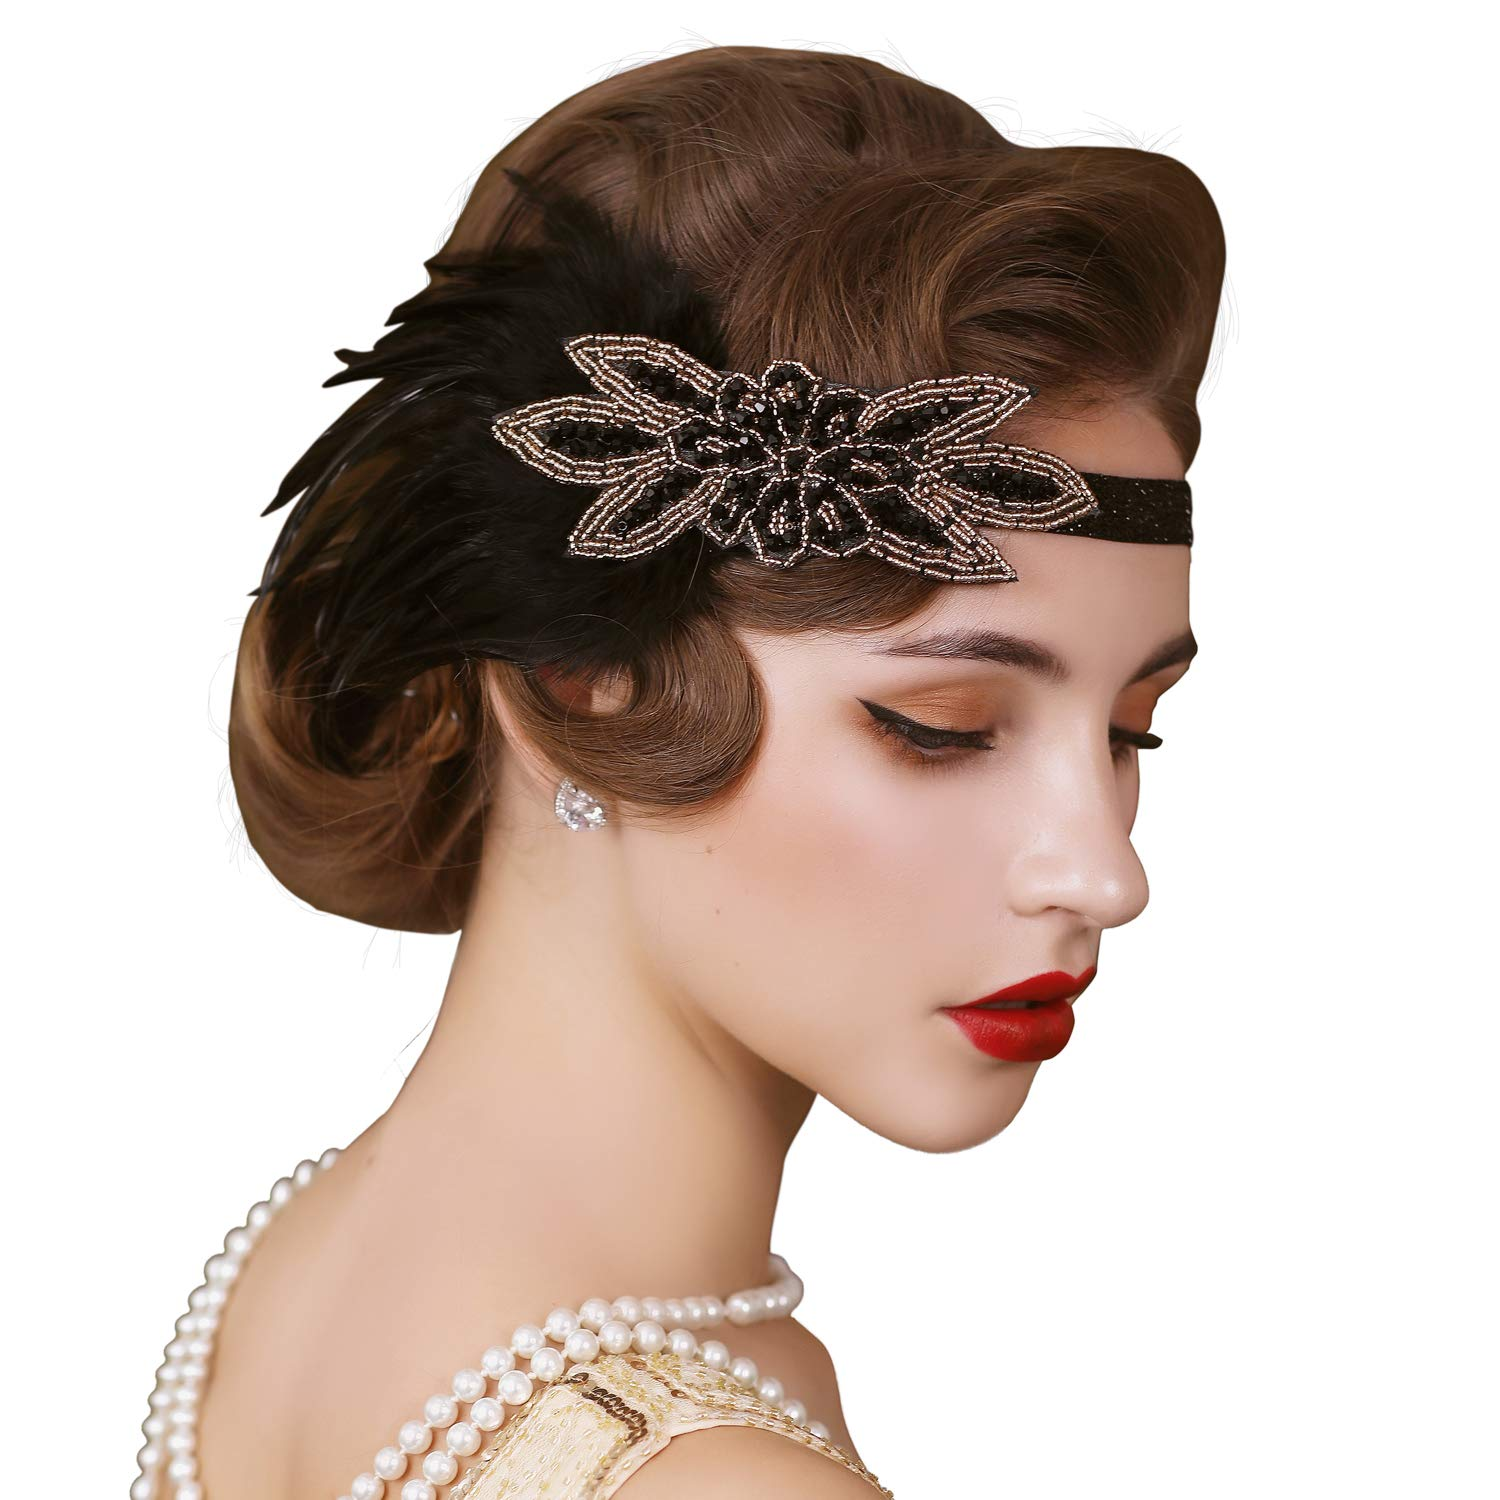 flapper hairstyles - HD 1500×1500